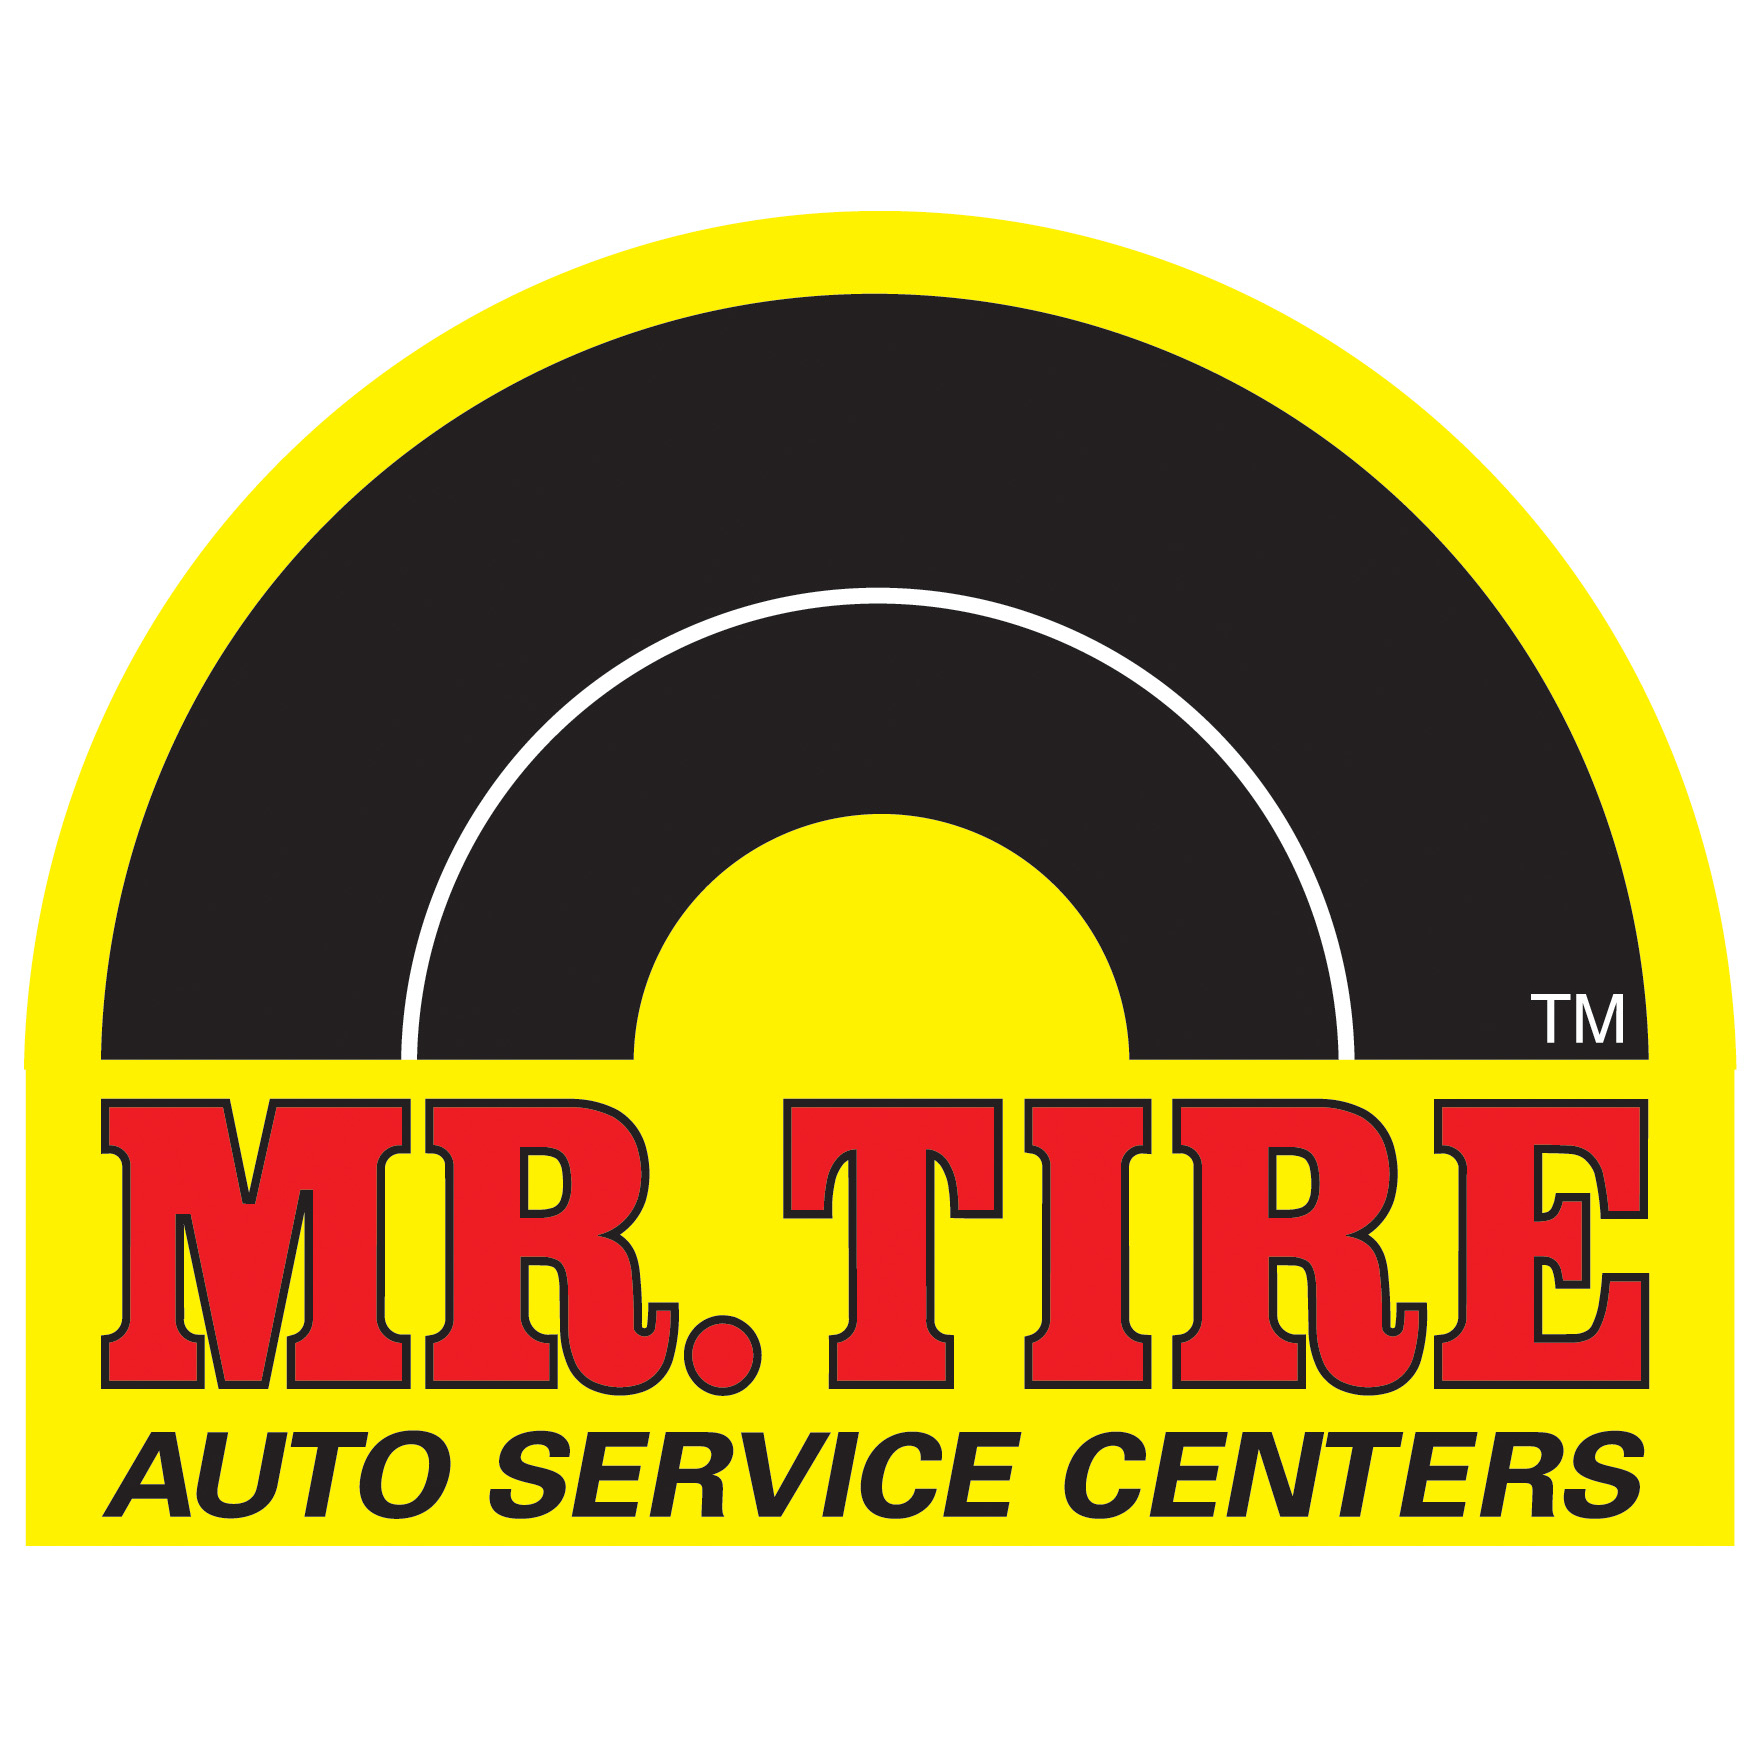 Mr Tire Auto Service Centers - Moon Township, PA - General Auto Repair & Service